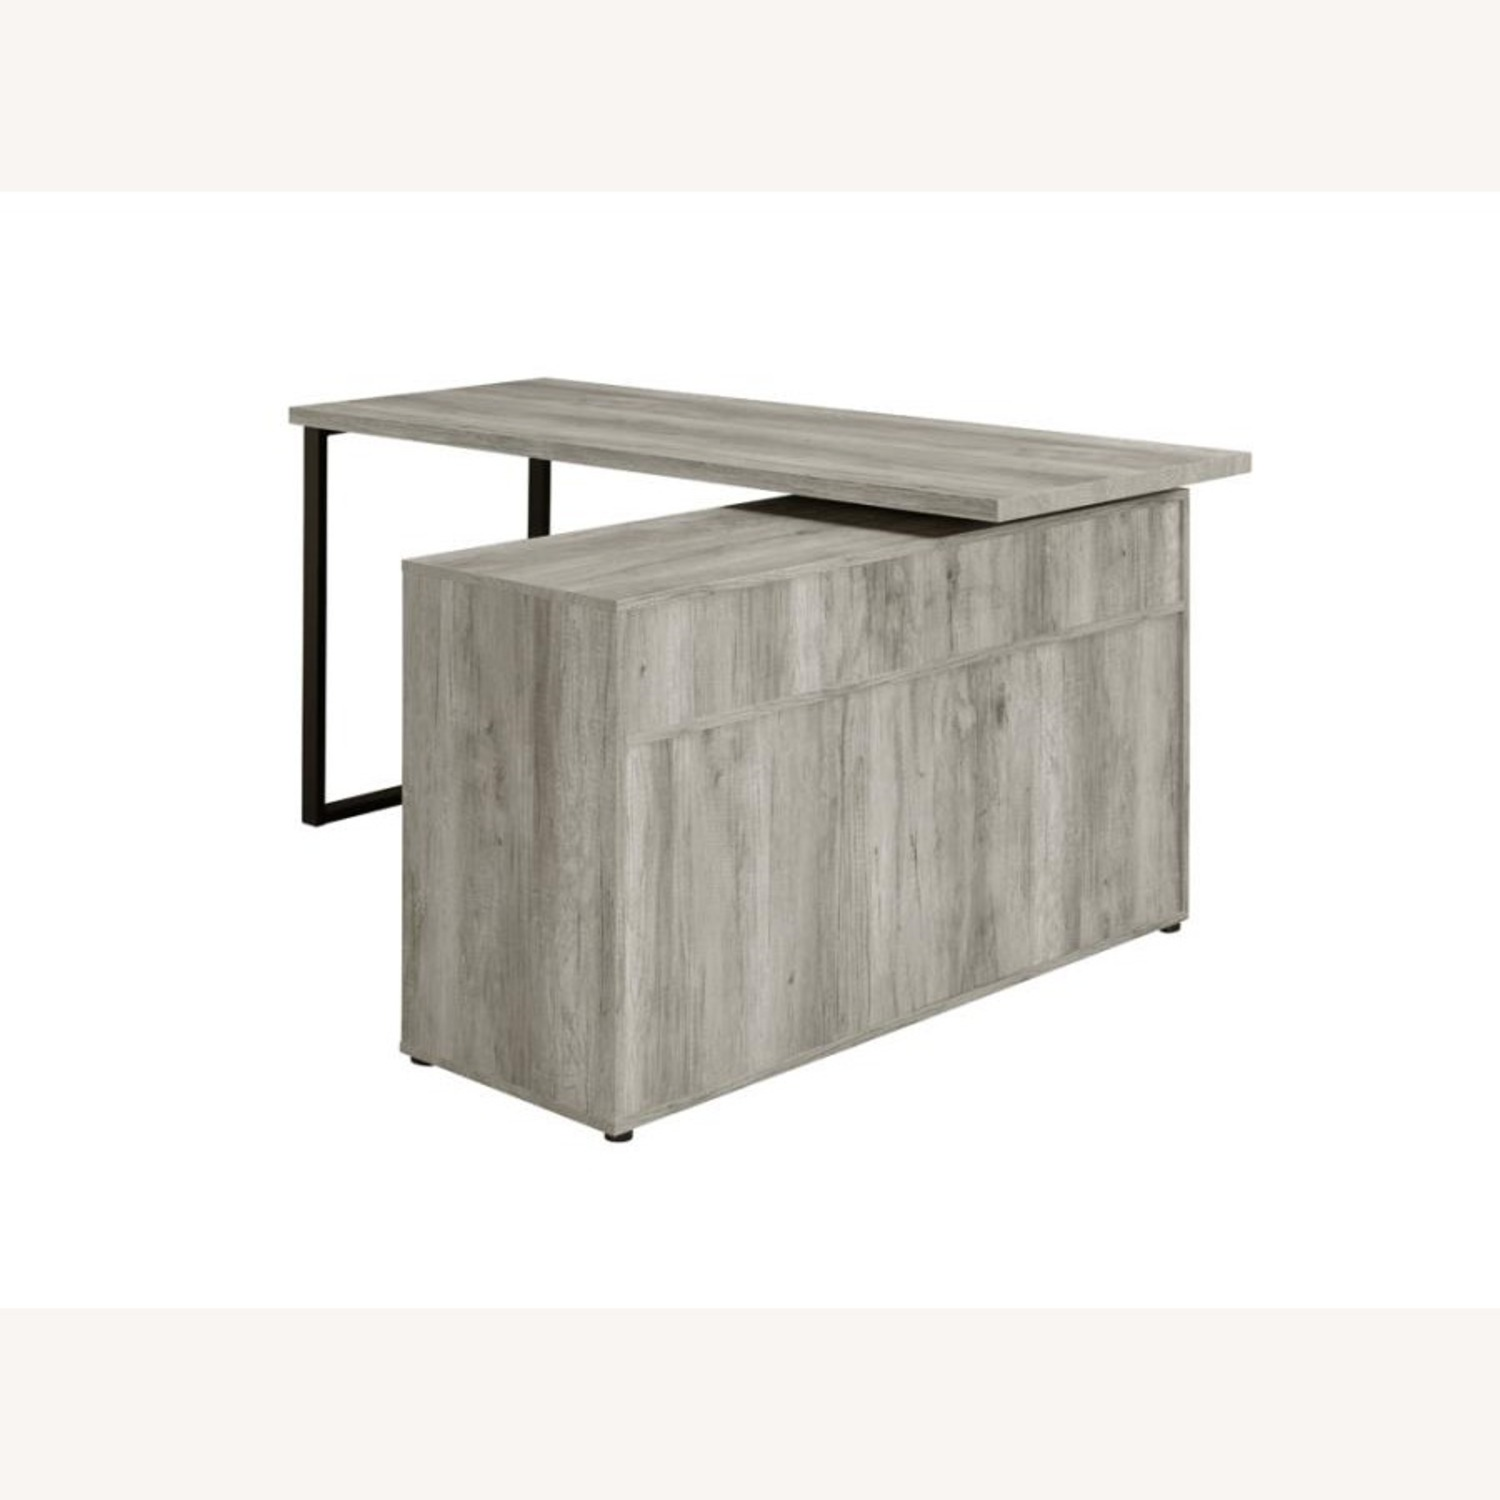 L-Shaped Office Desk In Grey Driftwood Finish - image-7